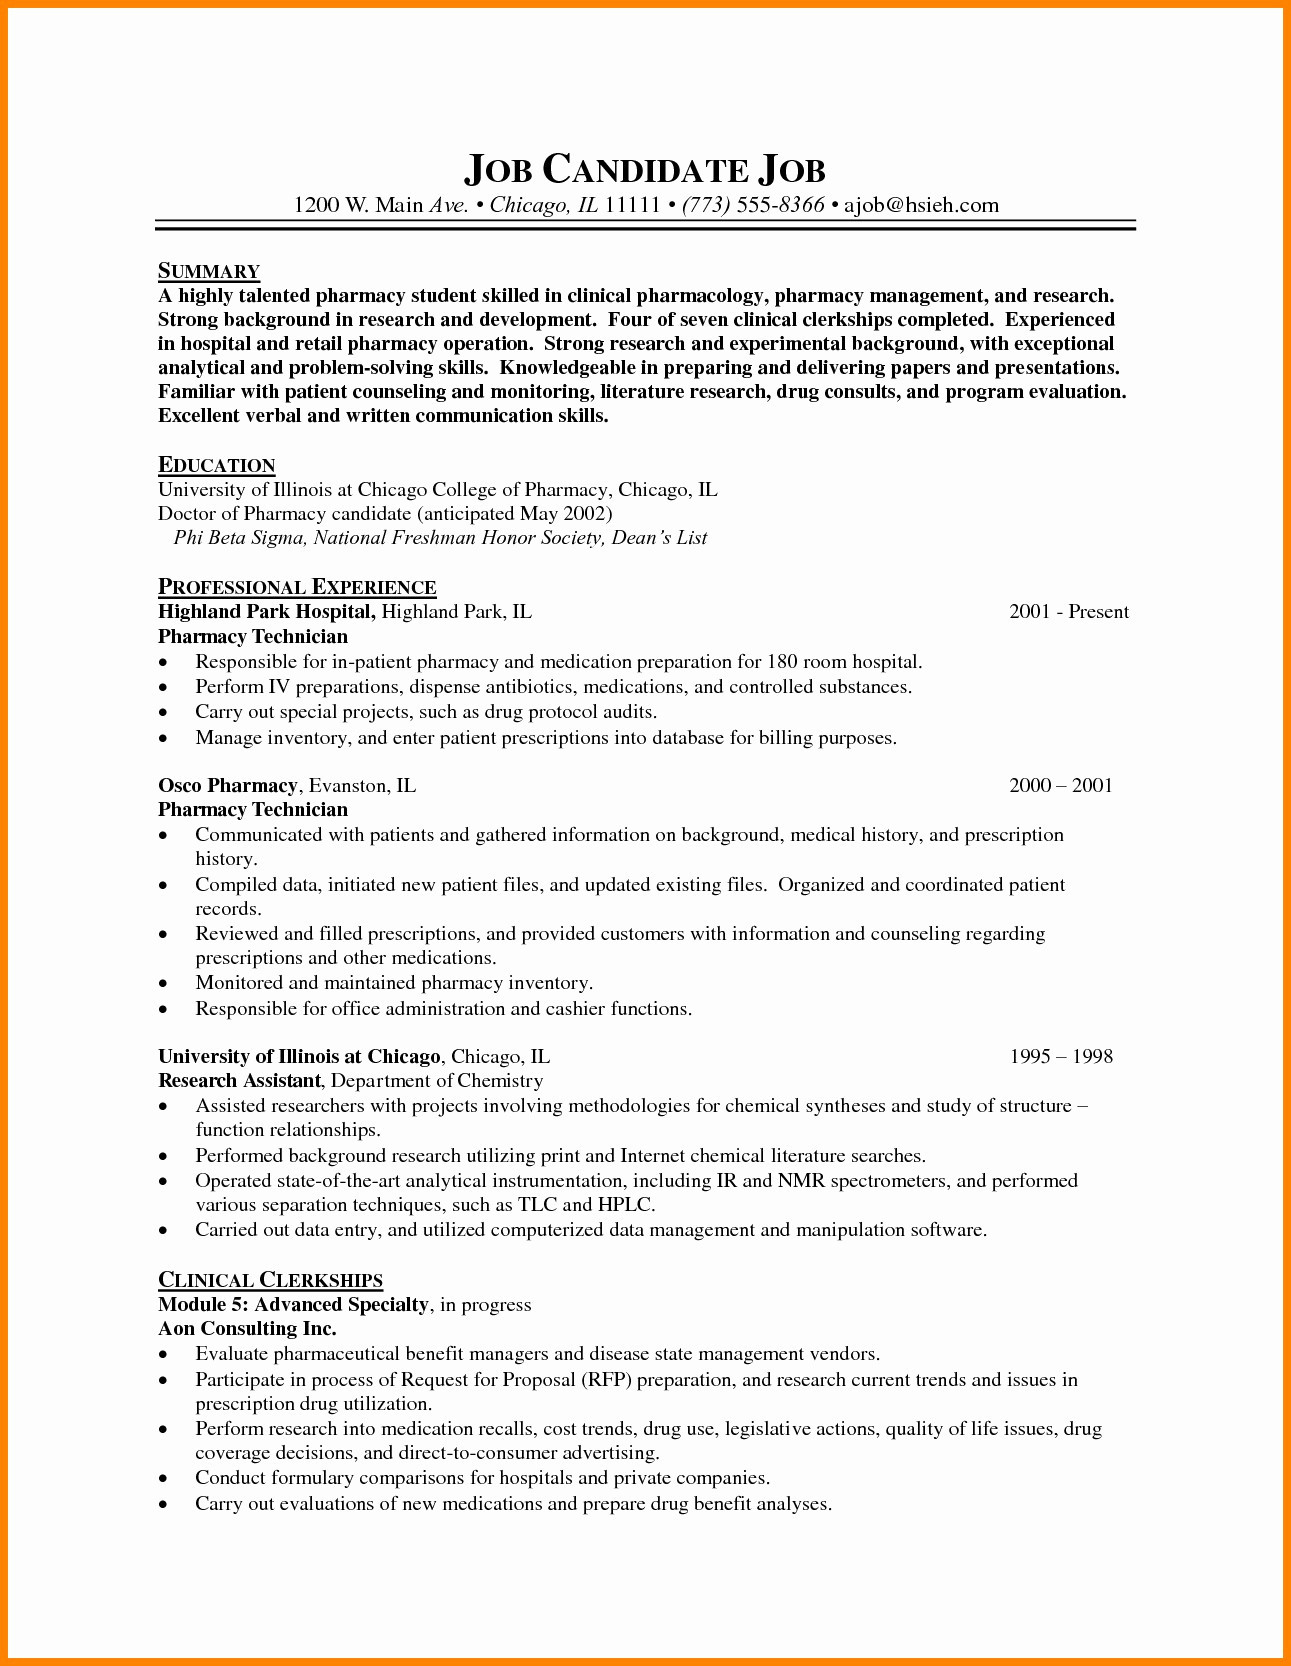 pharmacy technician resume summary example-Pharmacy Technician Job Description For Resume Recent Tech Resume Template Reference Resume For Hospital Job Unique 20 14-e